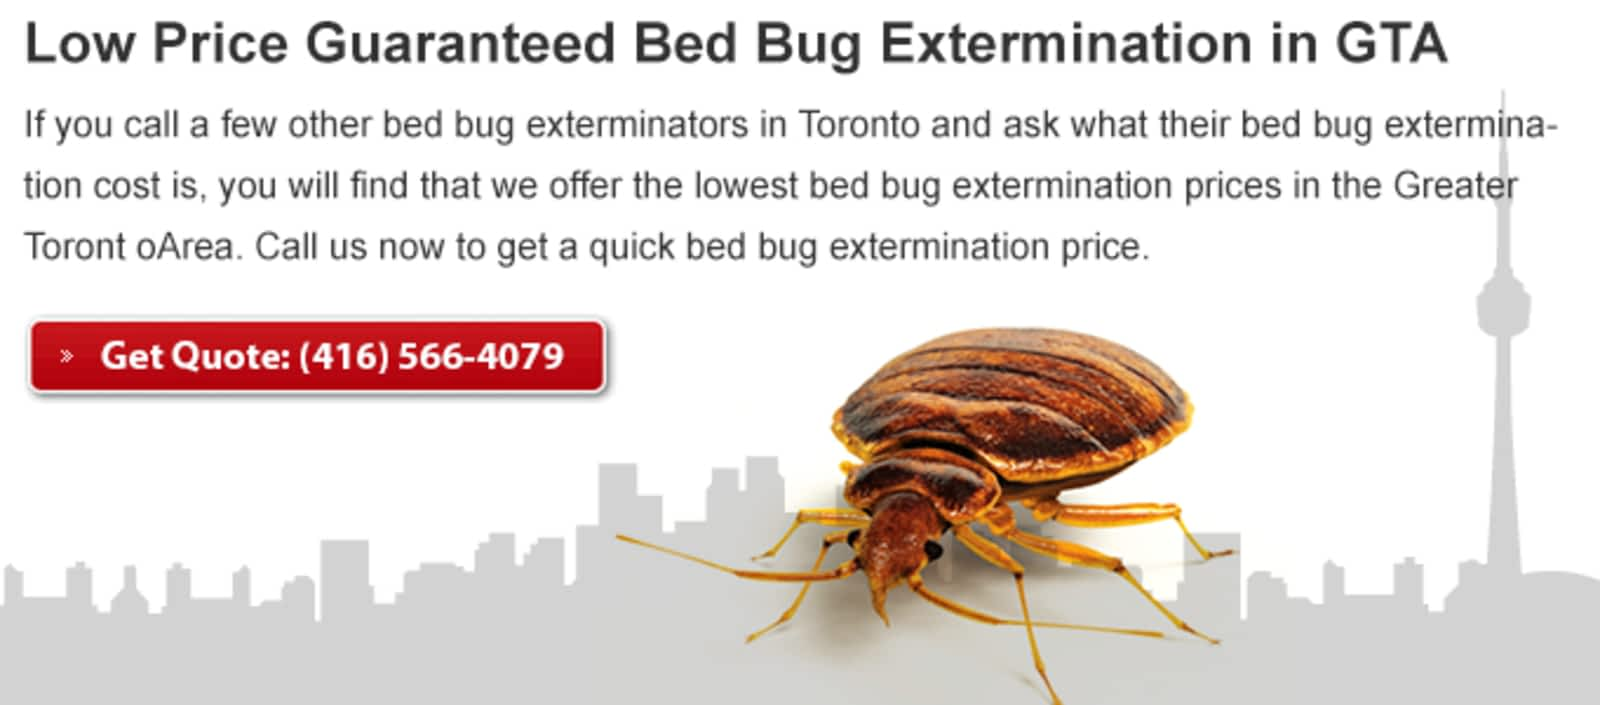 chemical control bugs pest heat bed exterminator baltimore bug